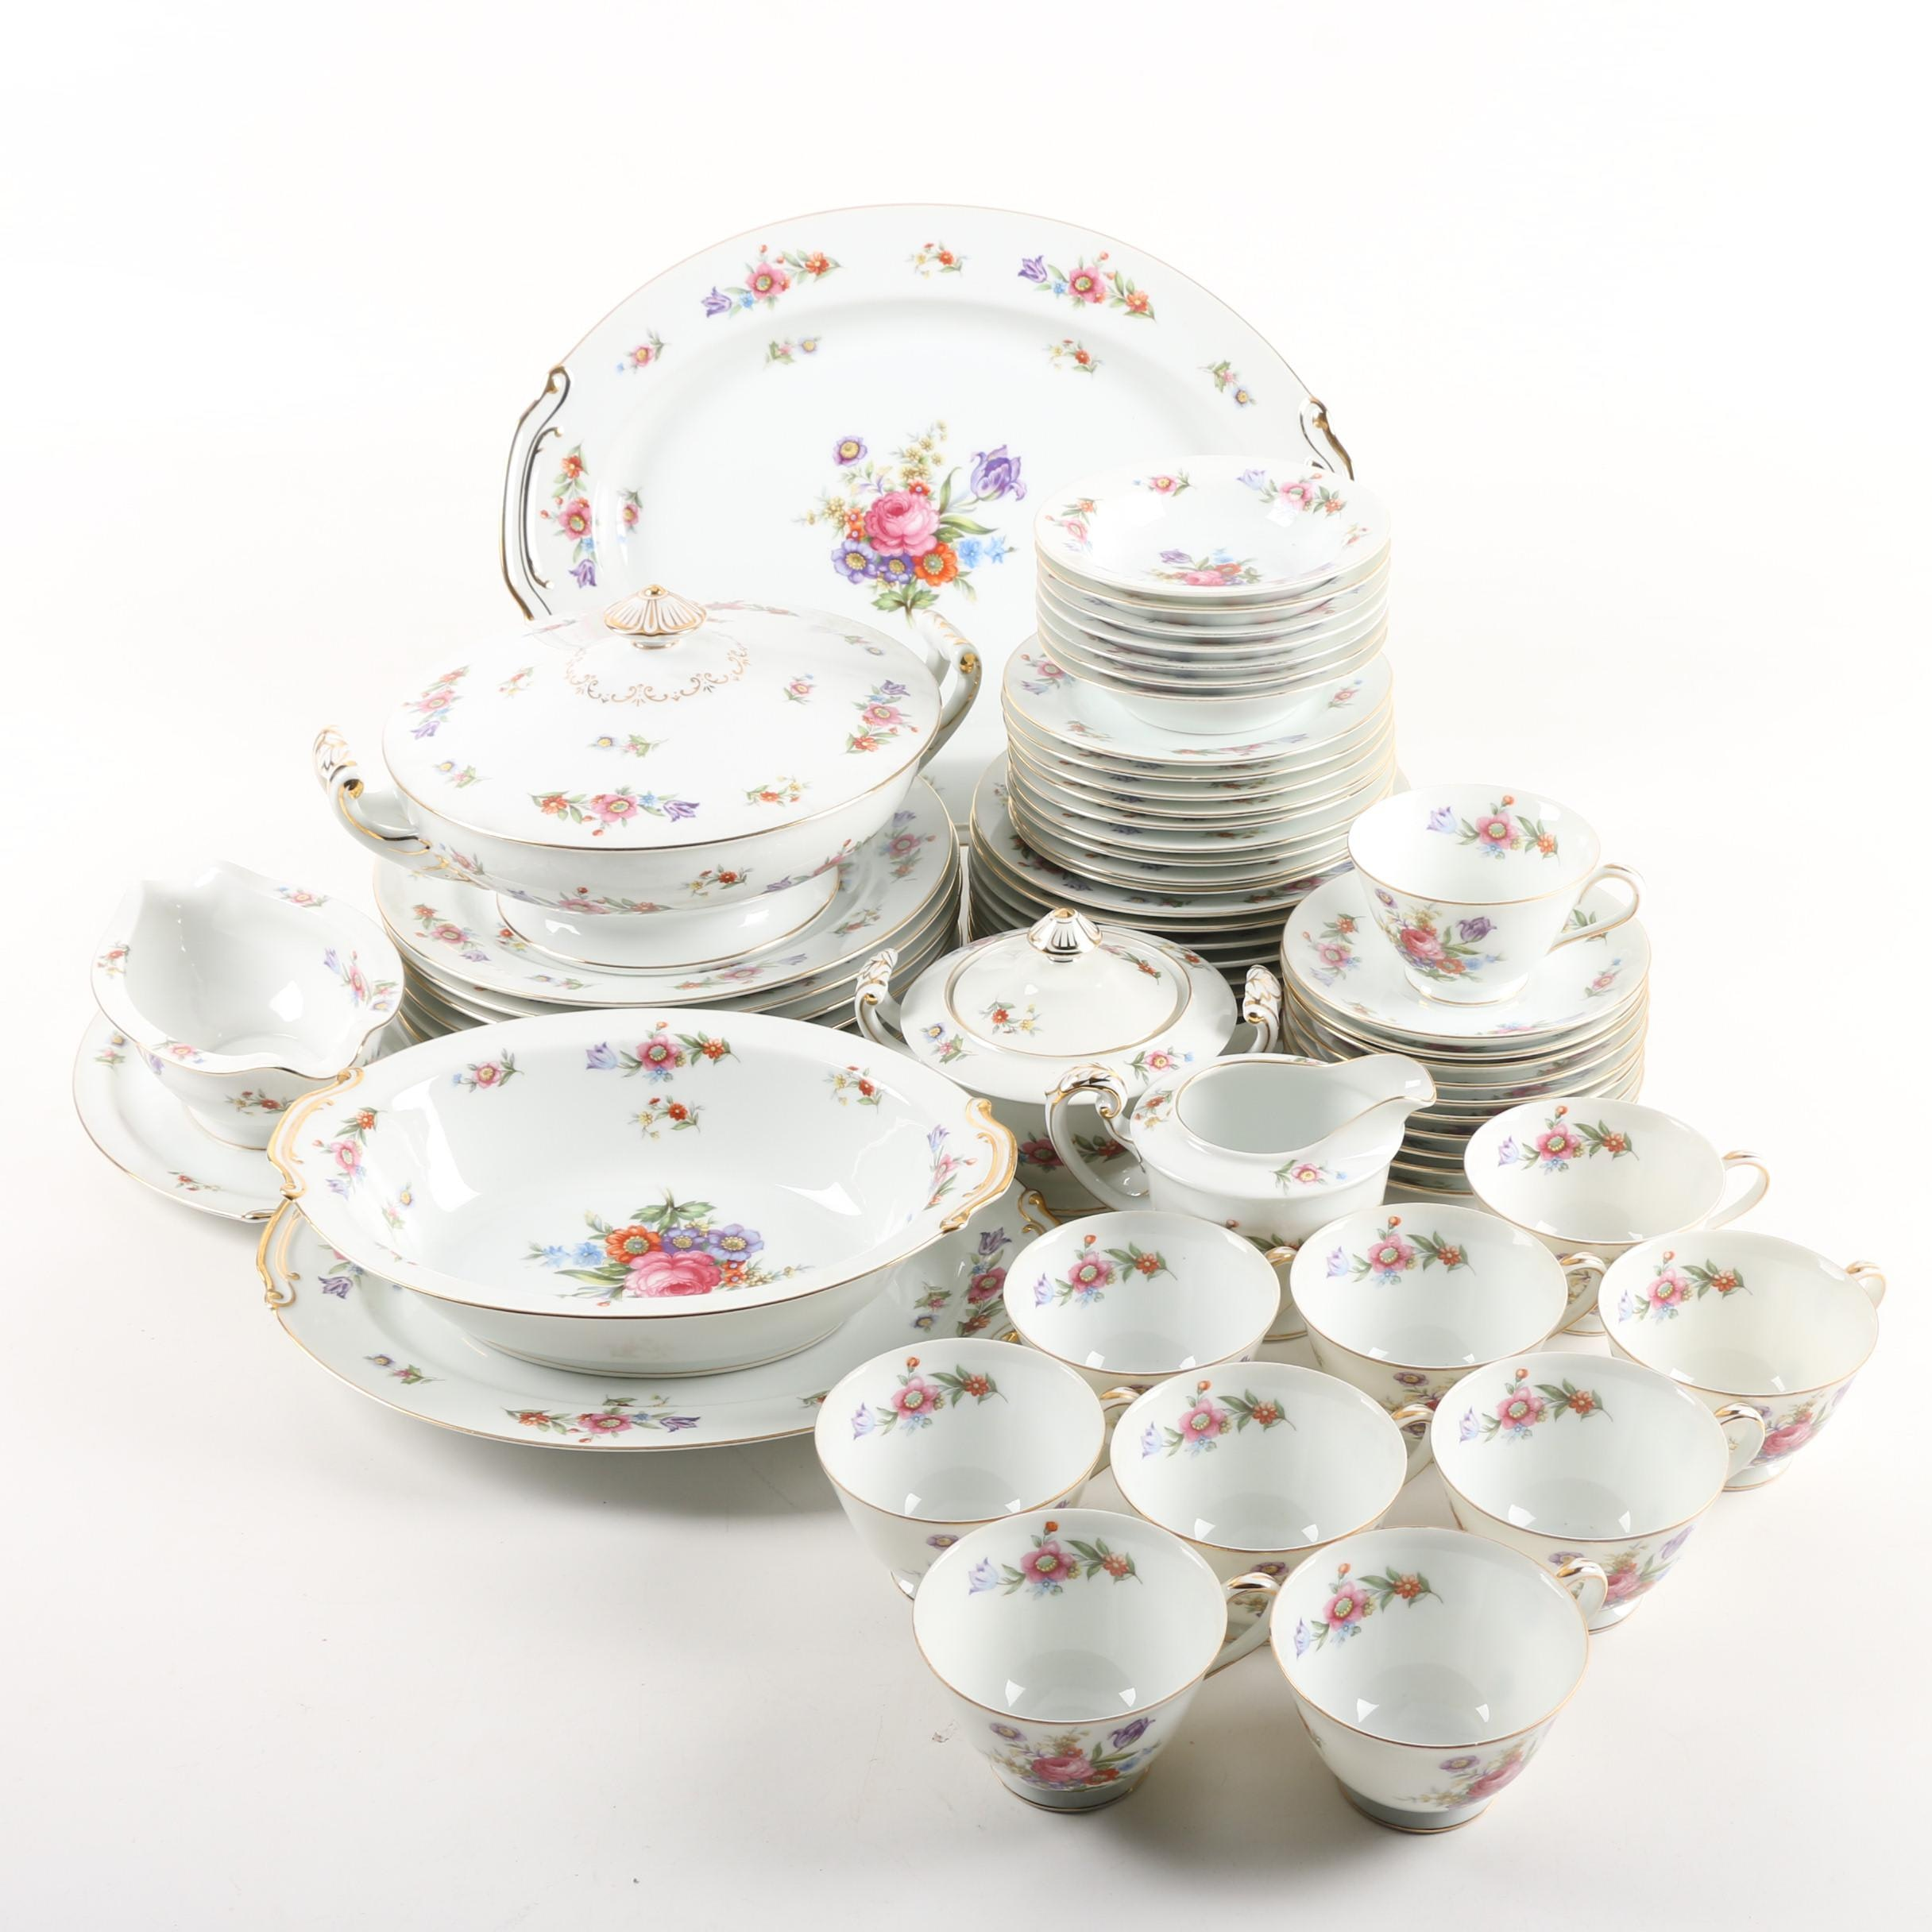 Sango China Floral Themed Tableware